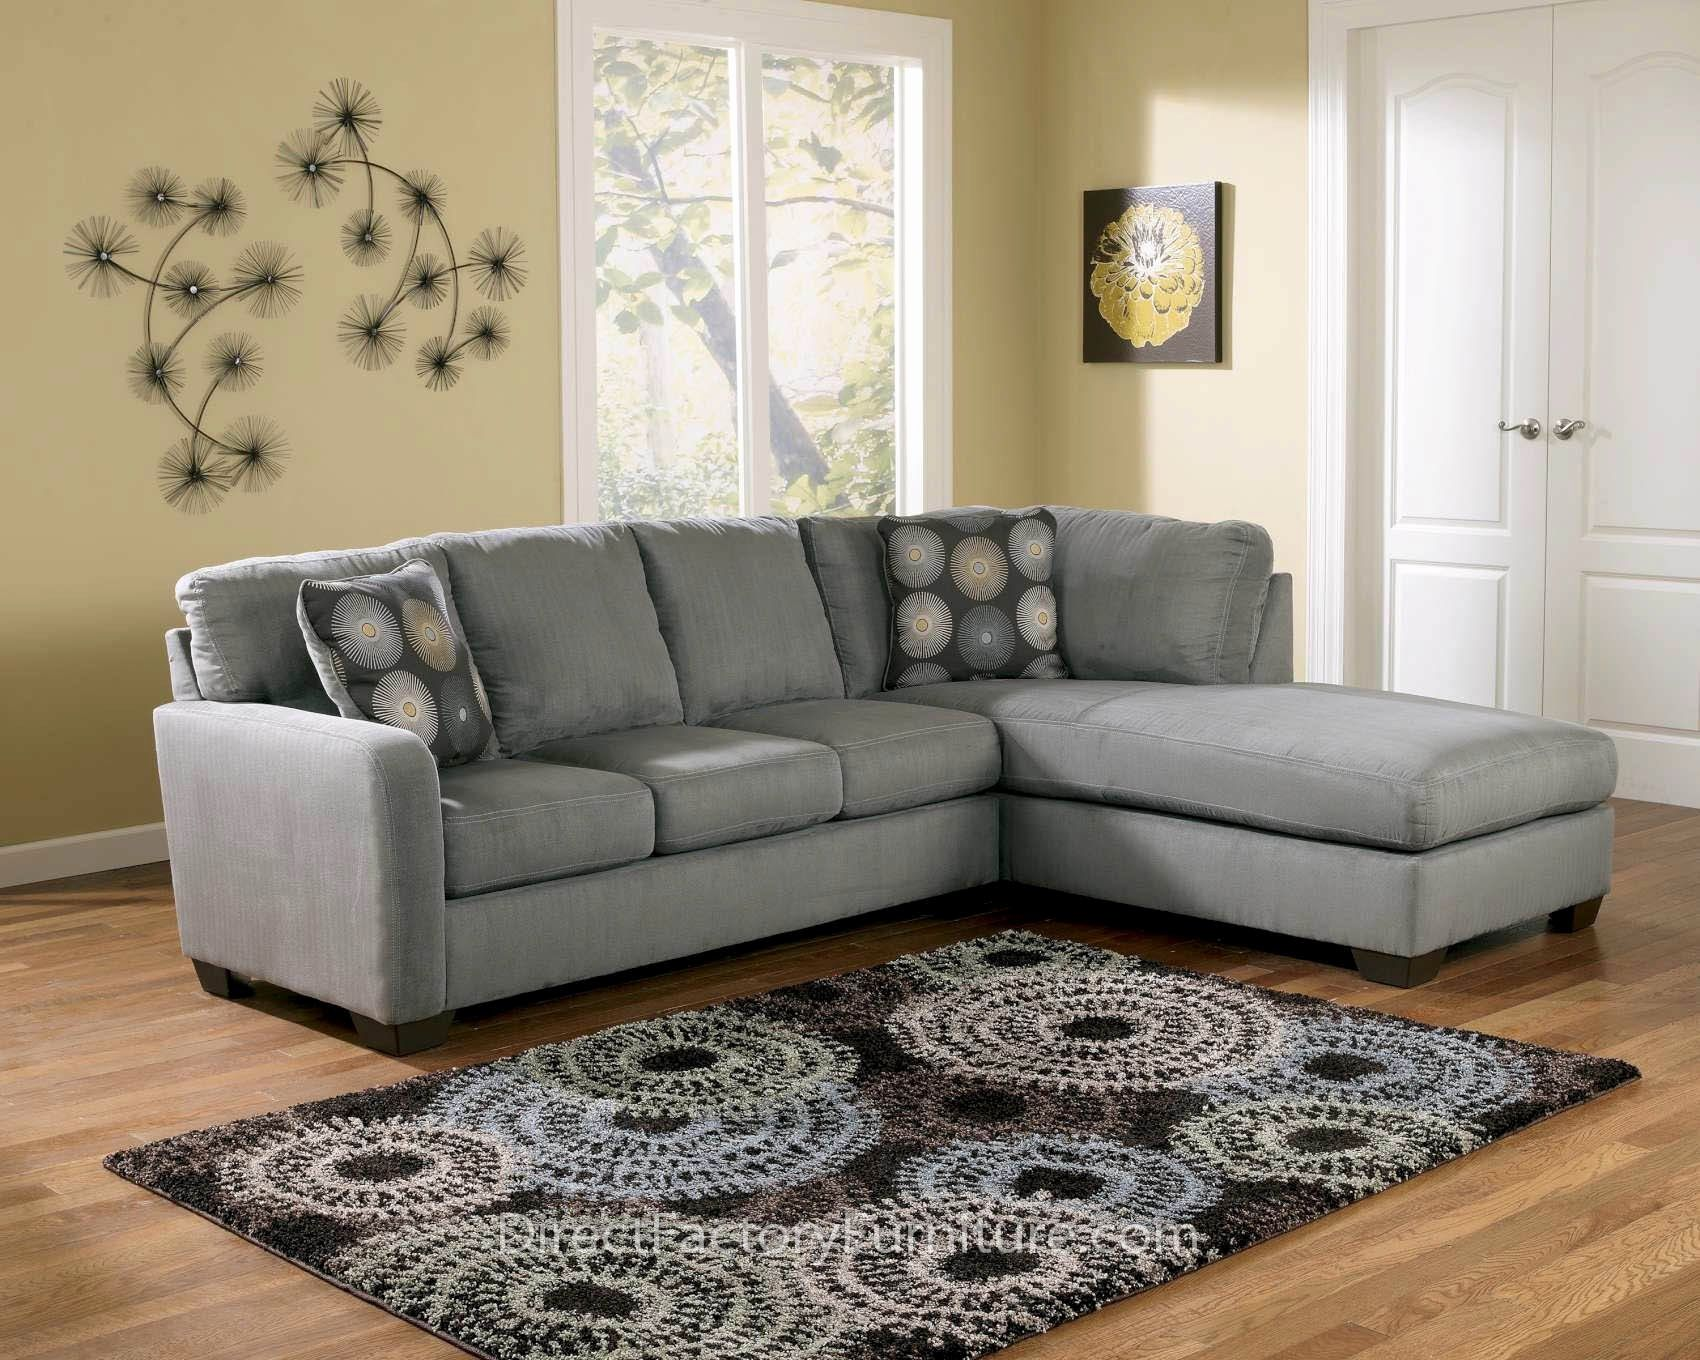 Inspirational Sectional Sofa Microfiber Pics Gray Sectional Sofa Microfiber Sectional Sofas Living Room Contemporary Sectional Sofa Sectional Sofa With Chaise